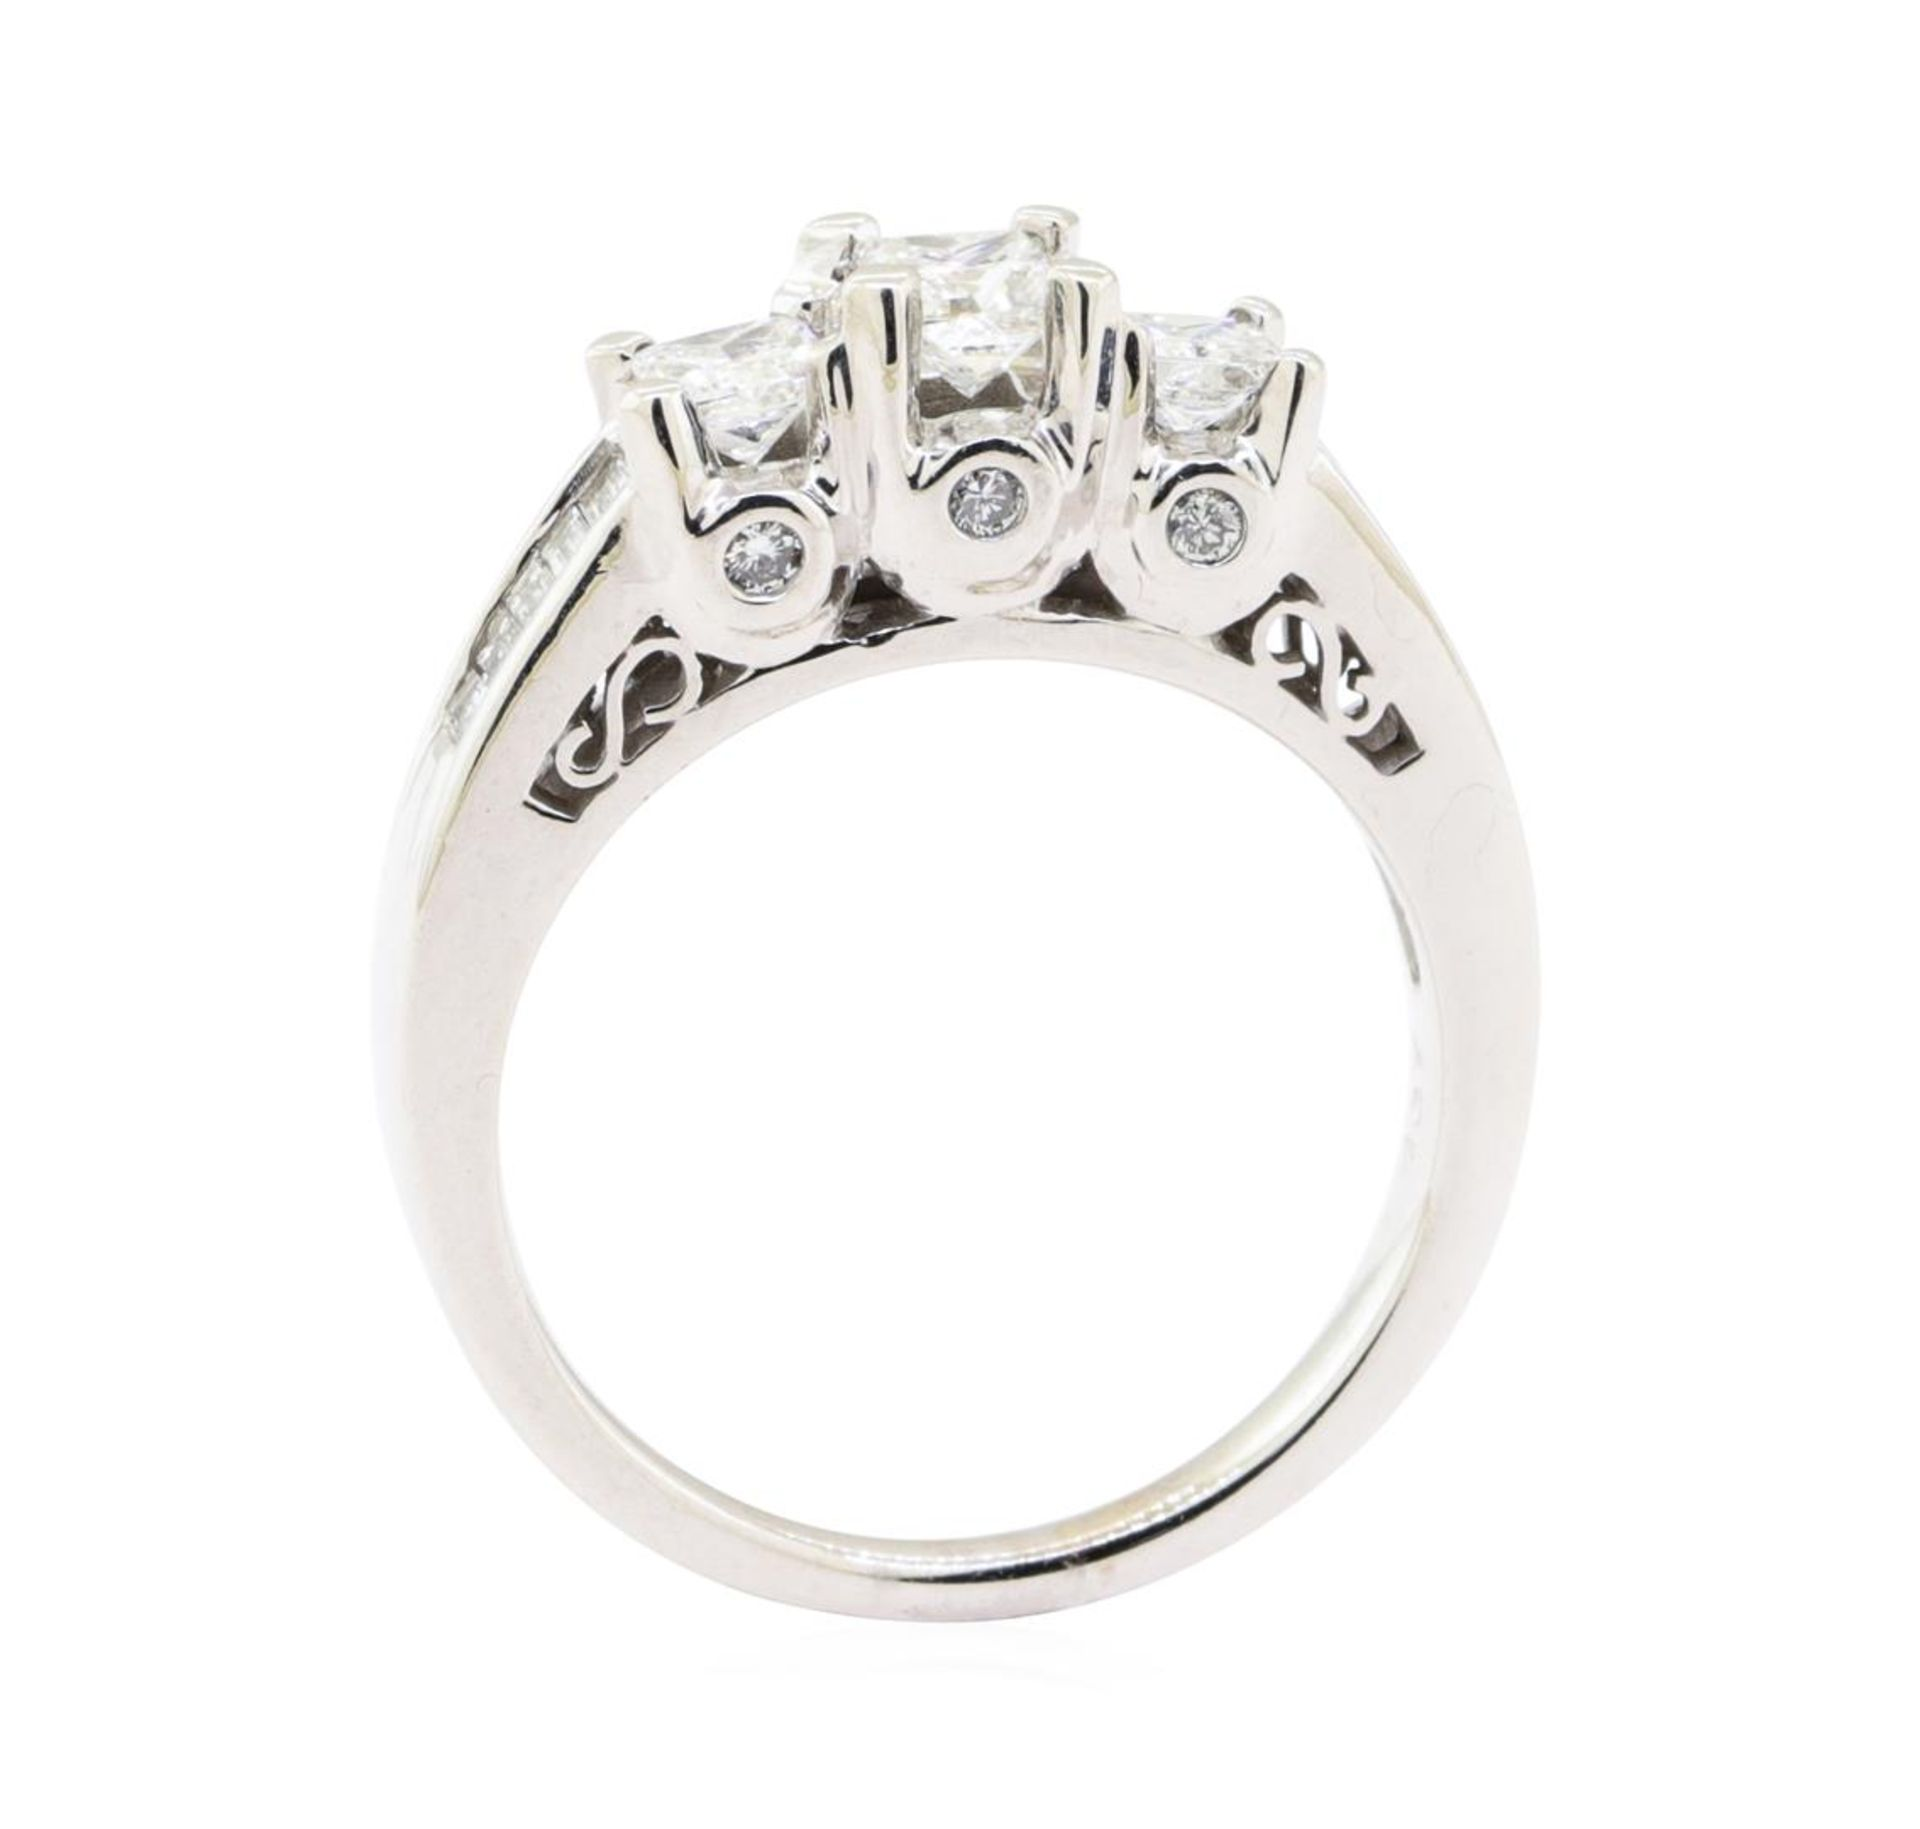 1.00 ctw Diamond Ring - 14KT White Gold - Image 4 of 5